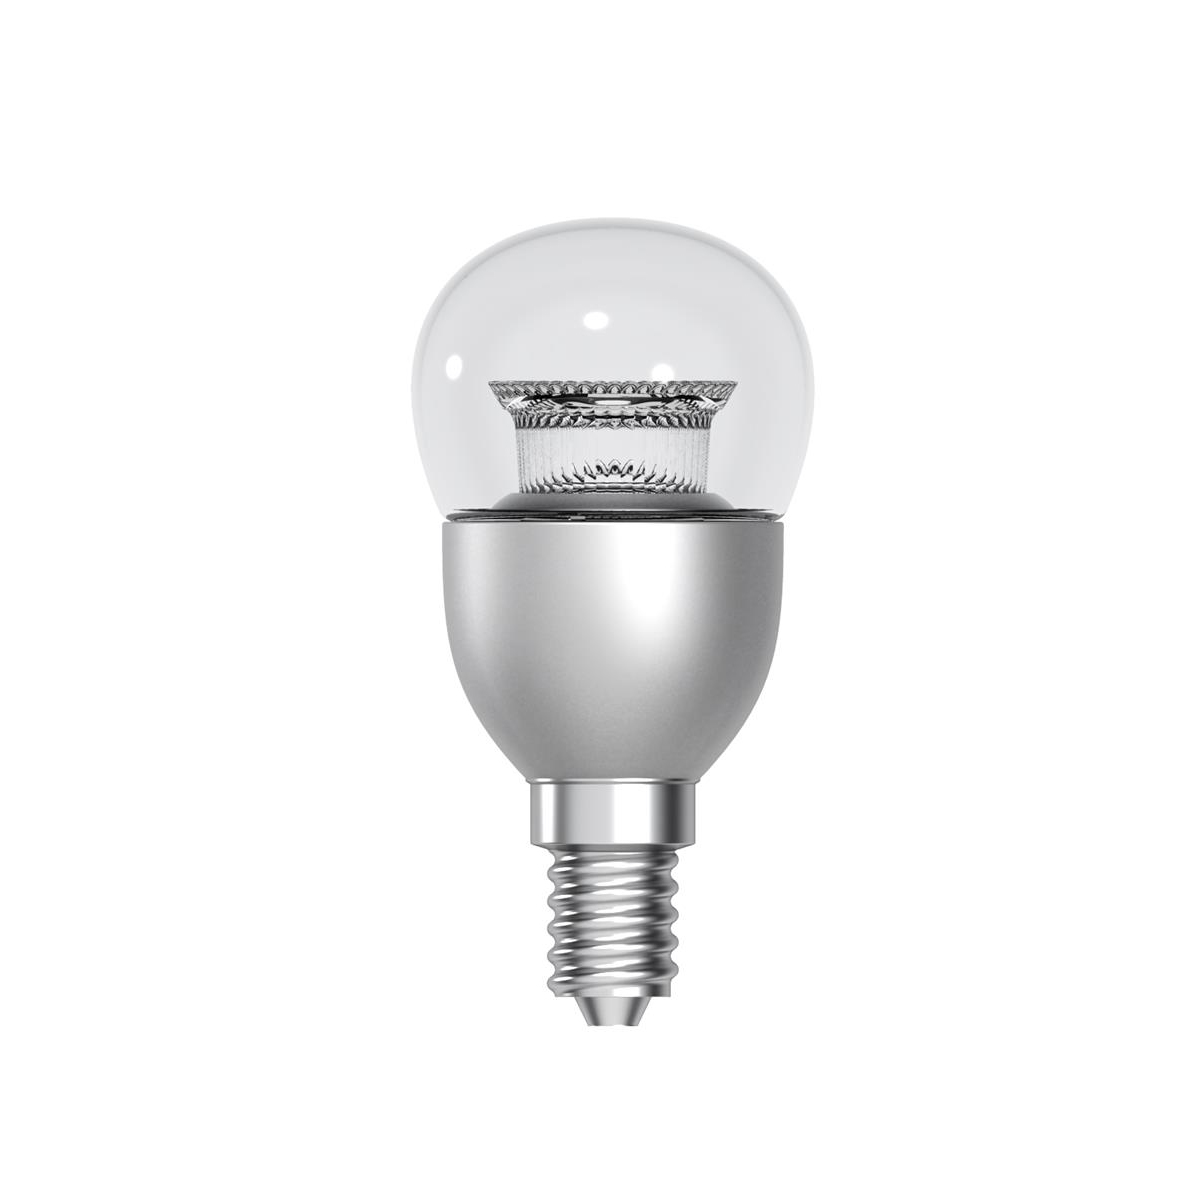 Tungsram Bulb LED E14 Globe Crown Deco 6W 40W Equivalent EEC A+ Energy Smart Dimmable Clear Ref 9303263